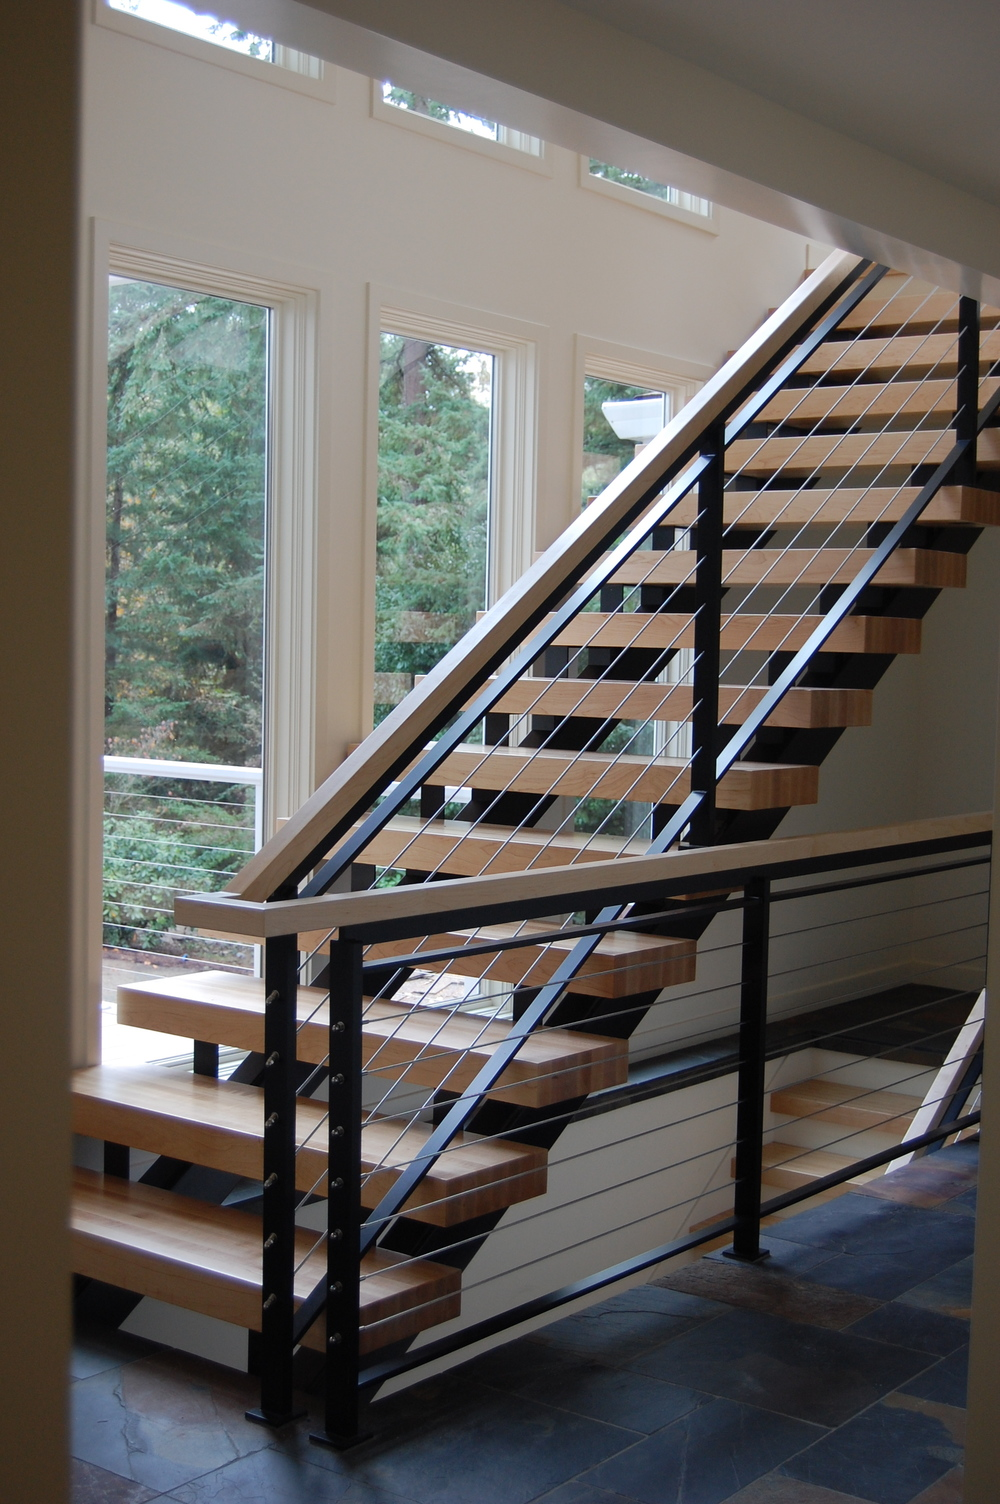 Painted Steel Staircase With 3 Floors Of Continuous Cable Railing Built Out  Of Solid Flat Bar